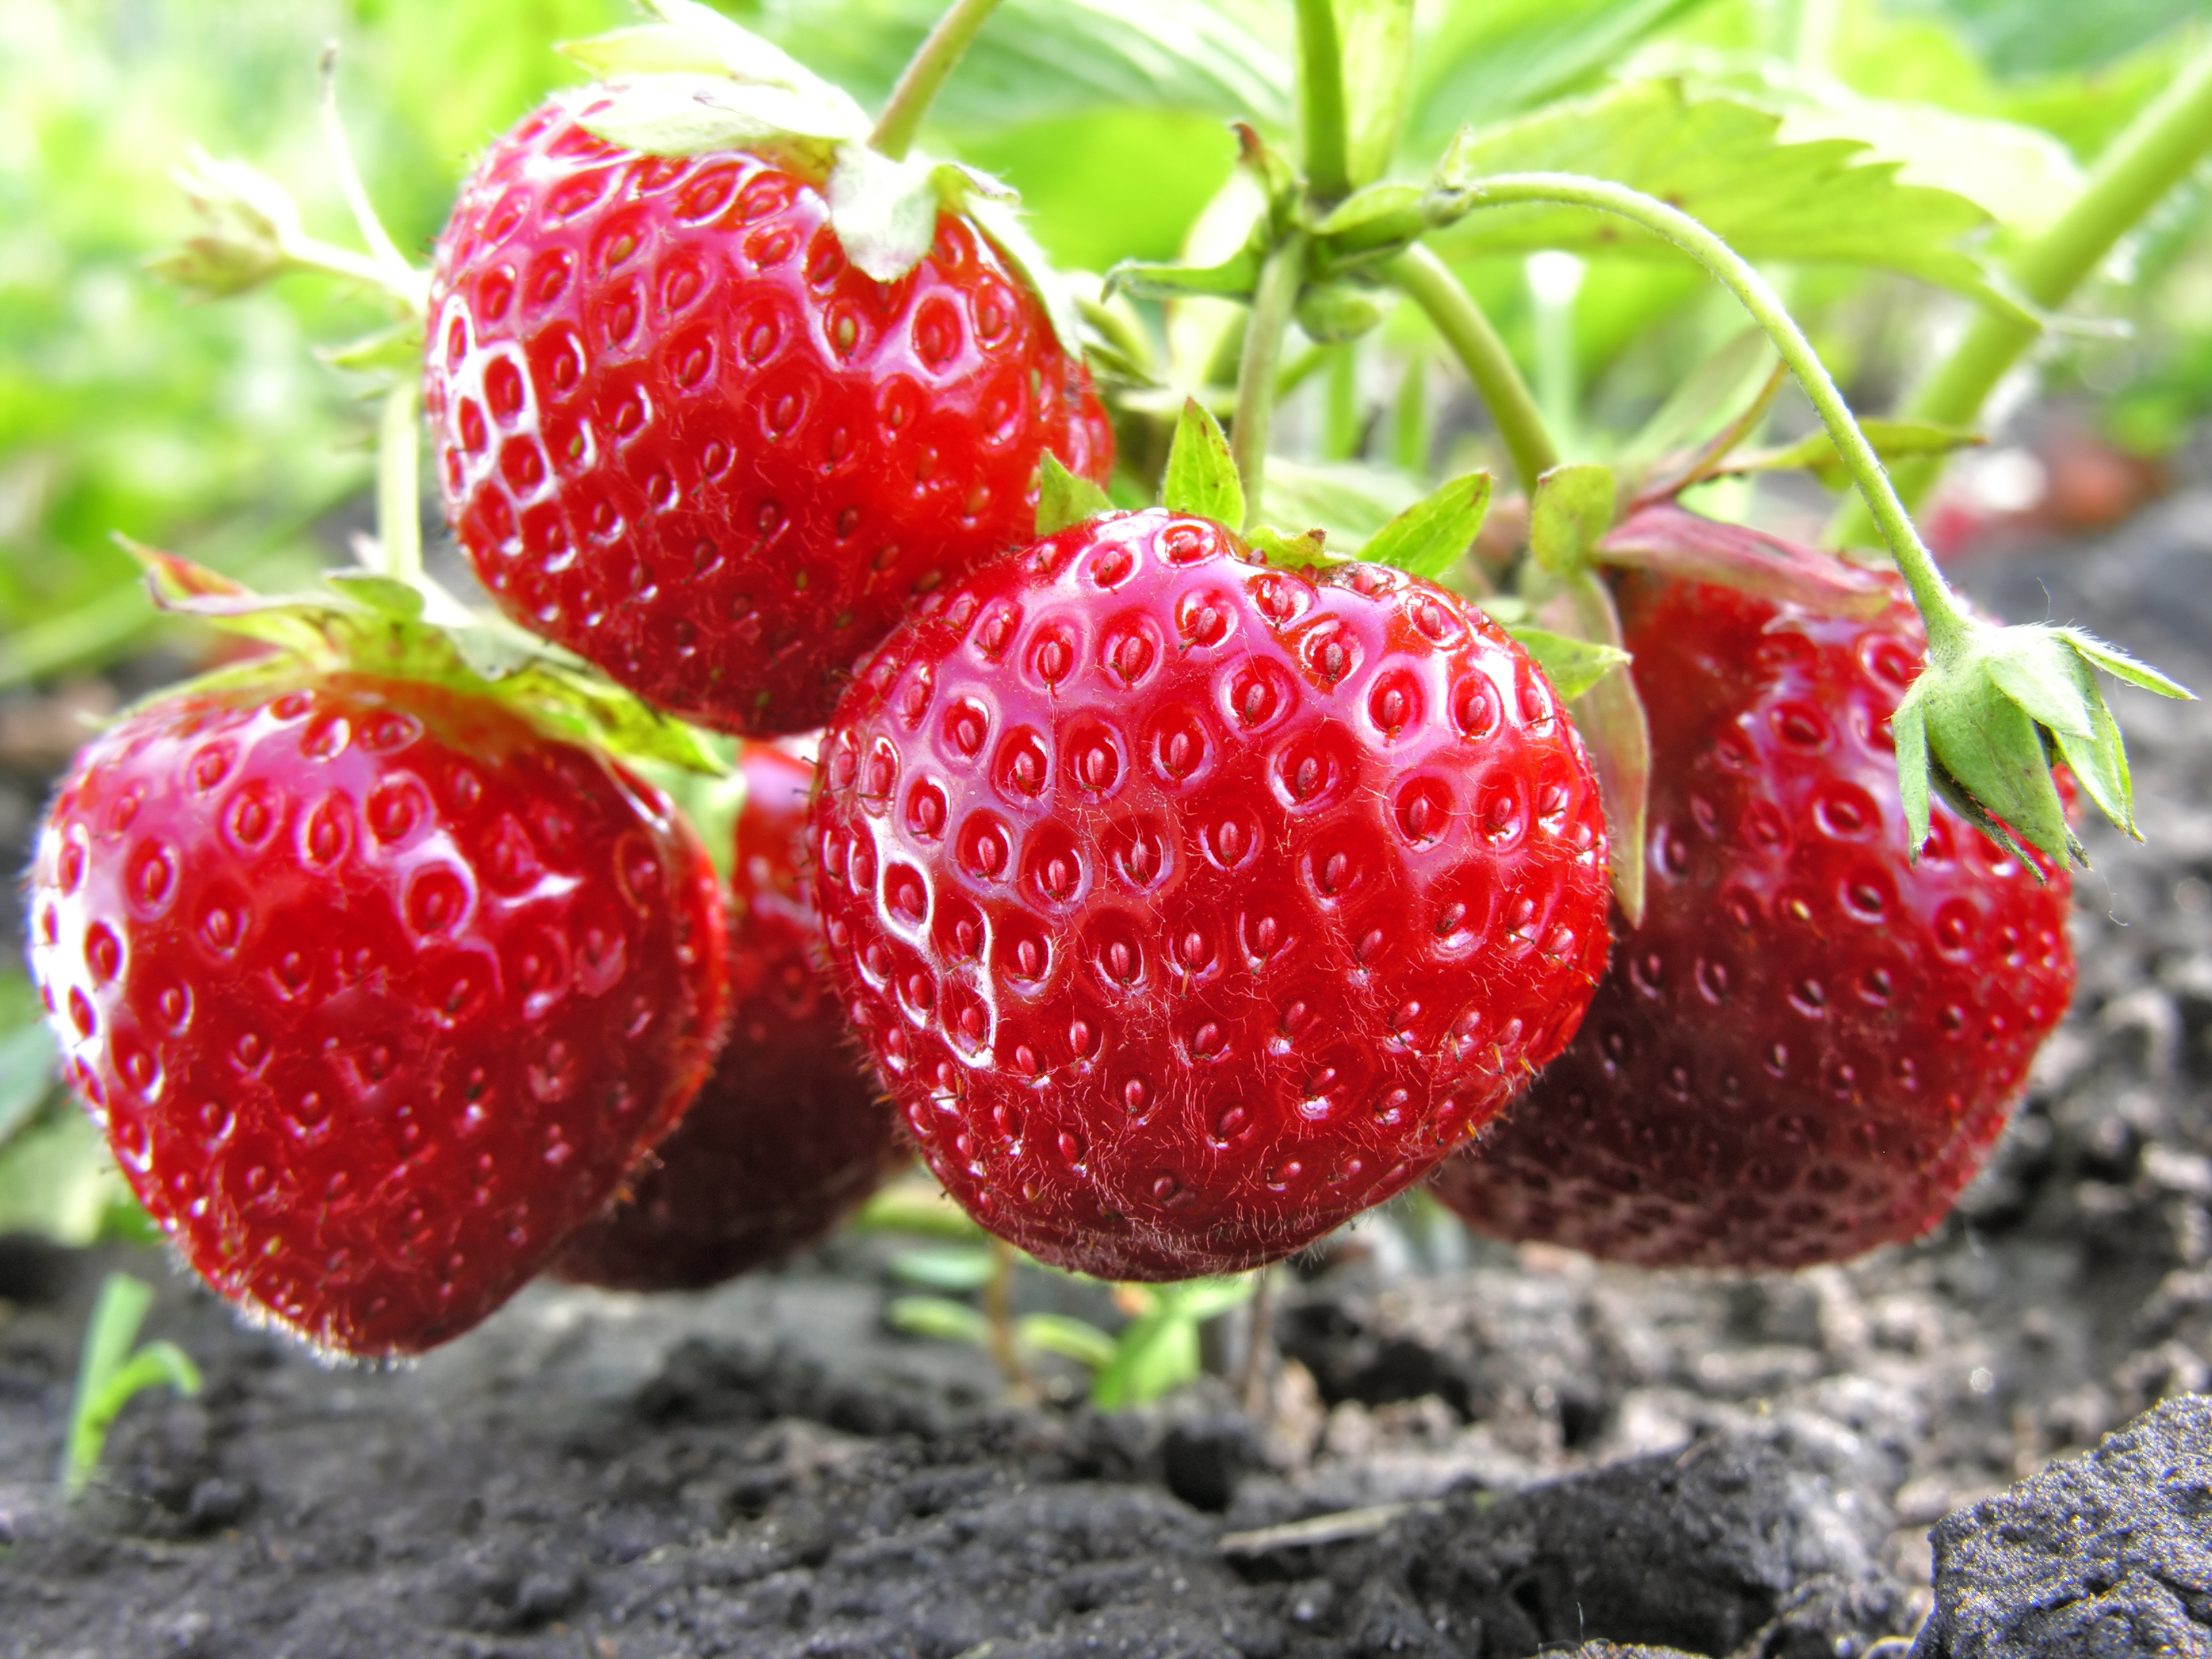 6 amazing health benefits of eating strawberries and their tops